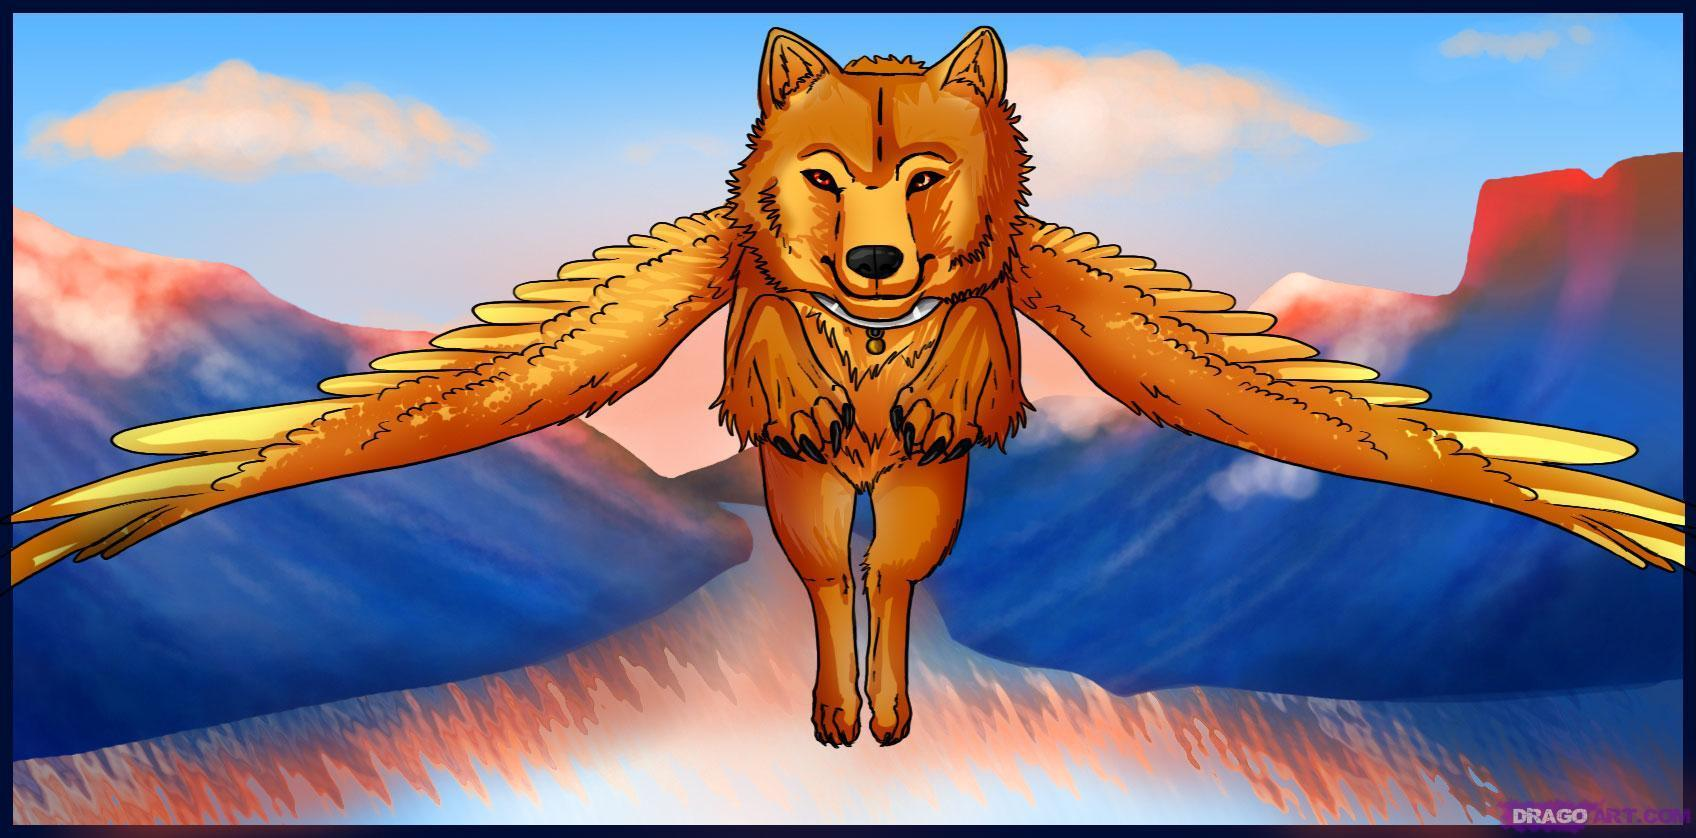 Winged Wolves Images Winged Wolves Hd Wallpaper And Background